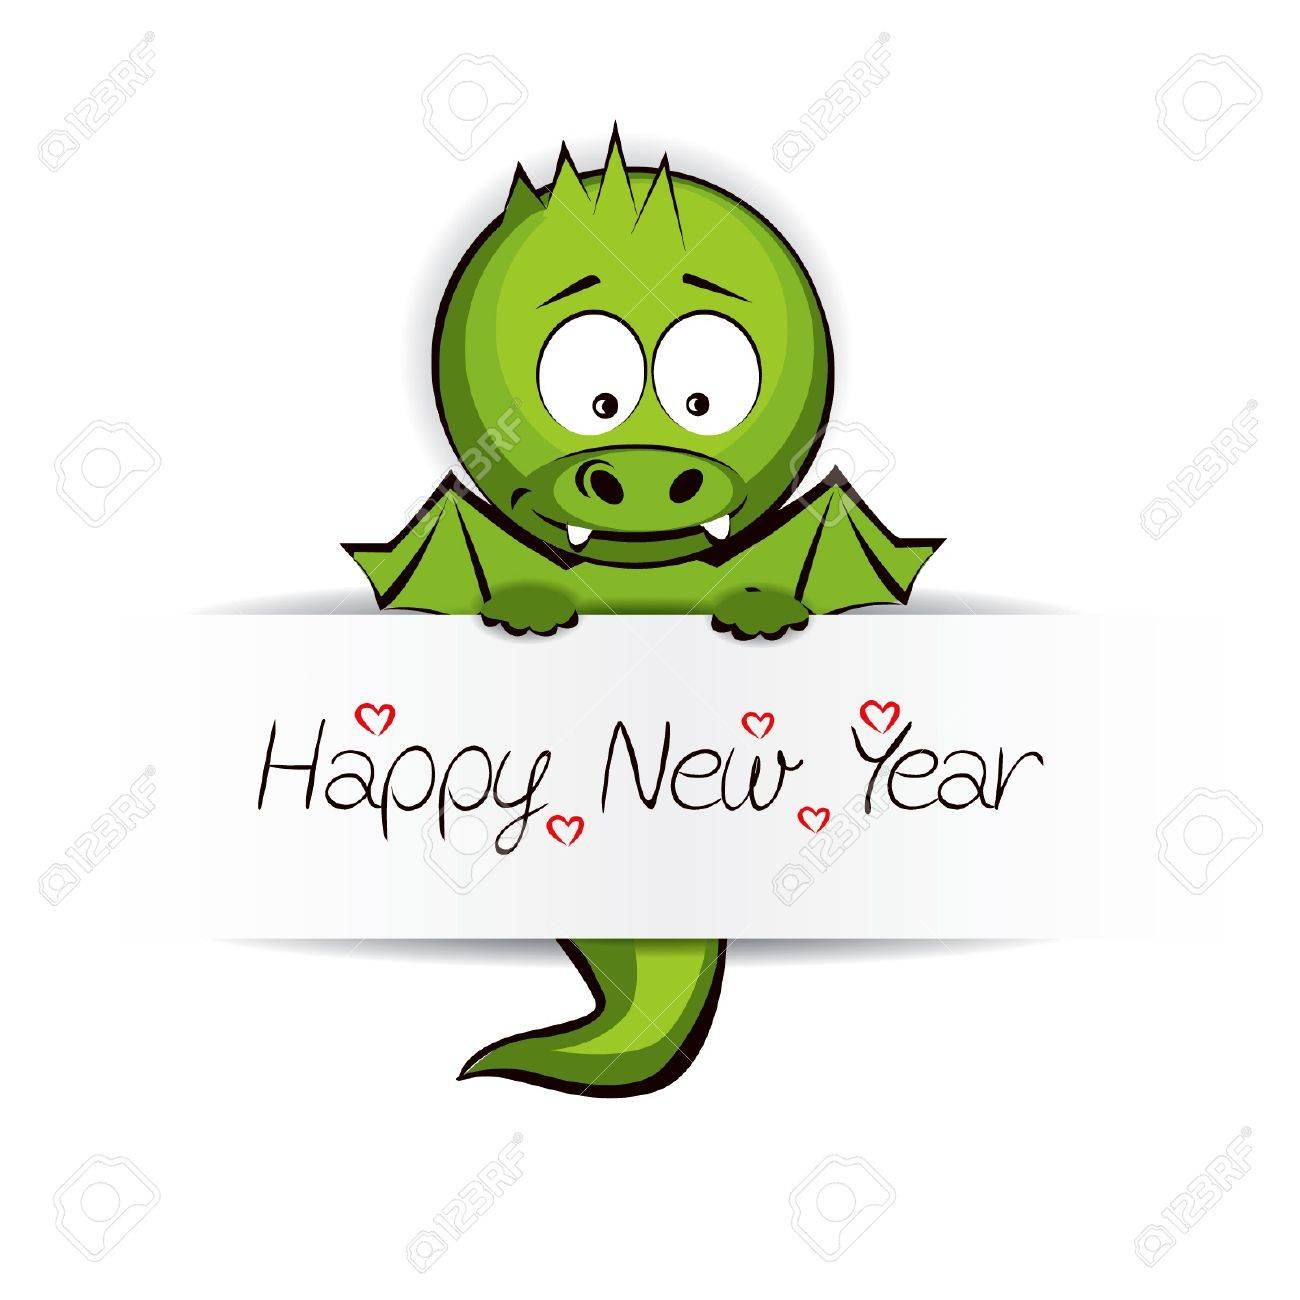 Cute Baby Dragon with message Happy New Year Stock Vector - 10905553